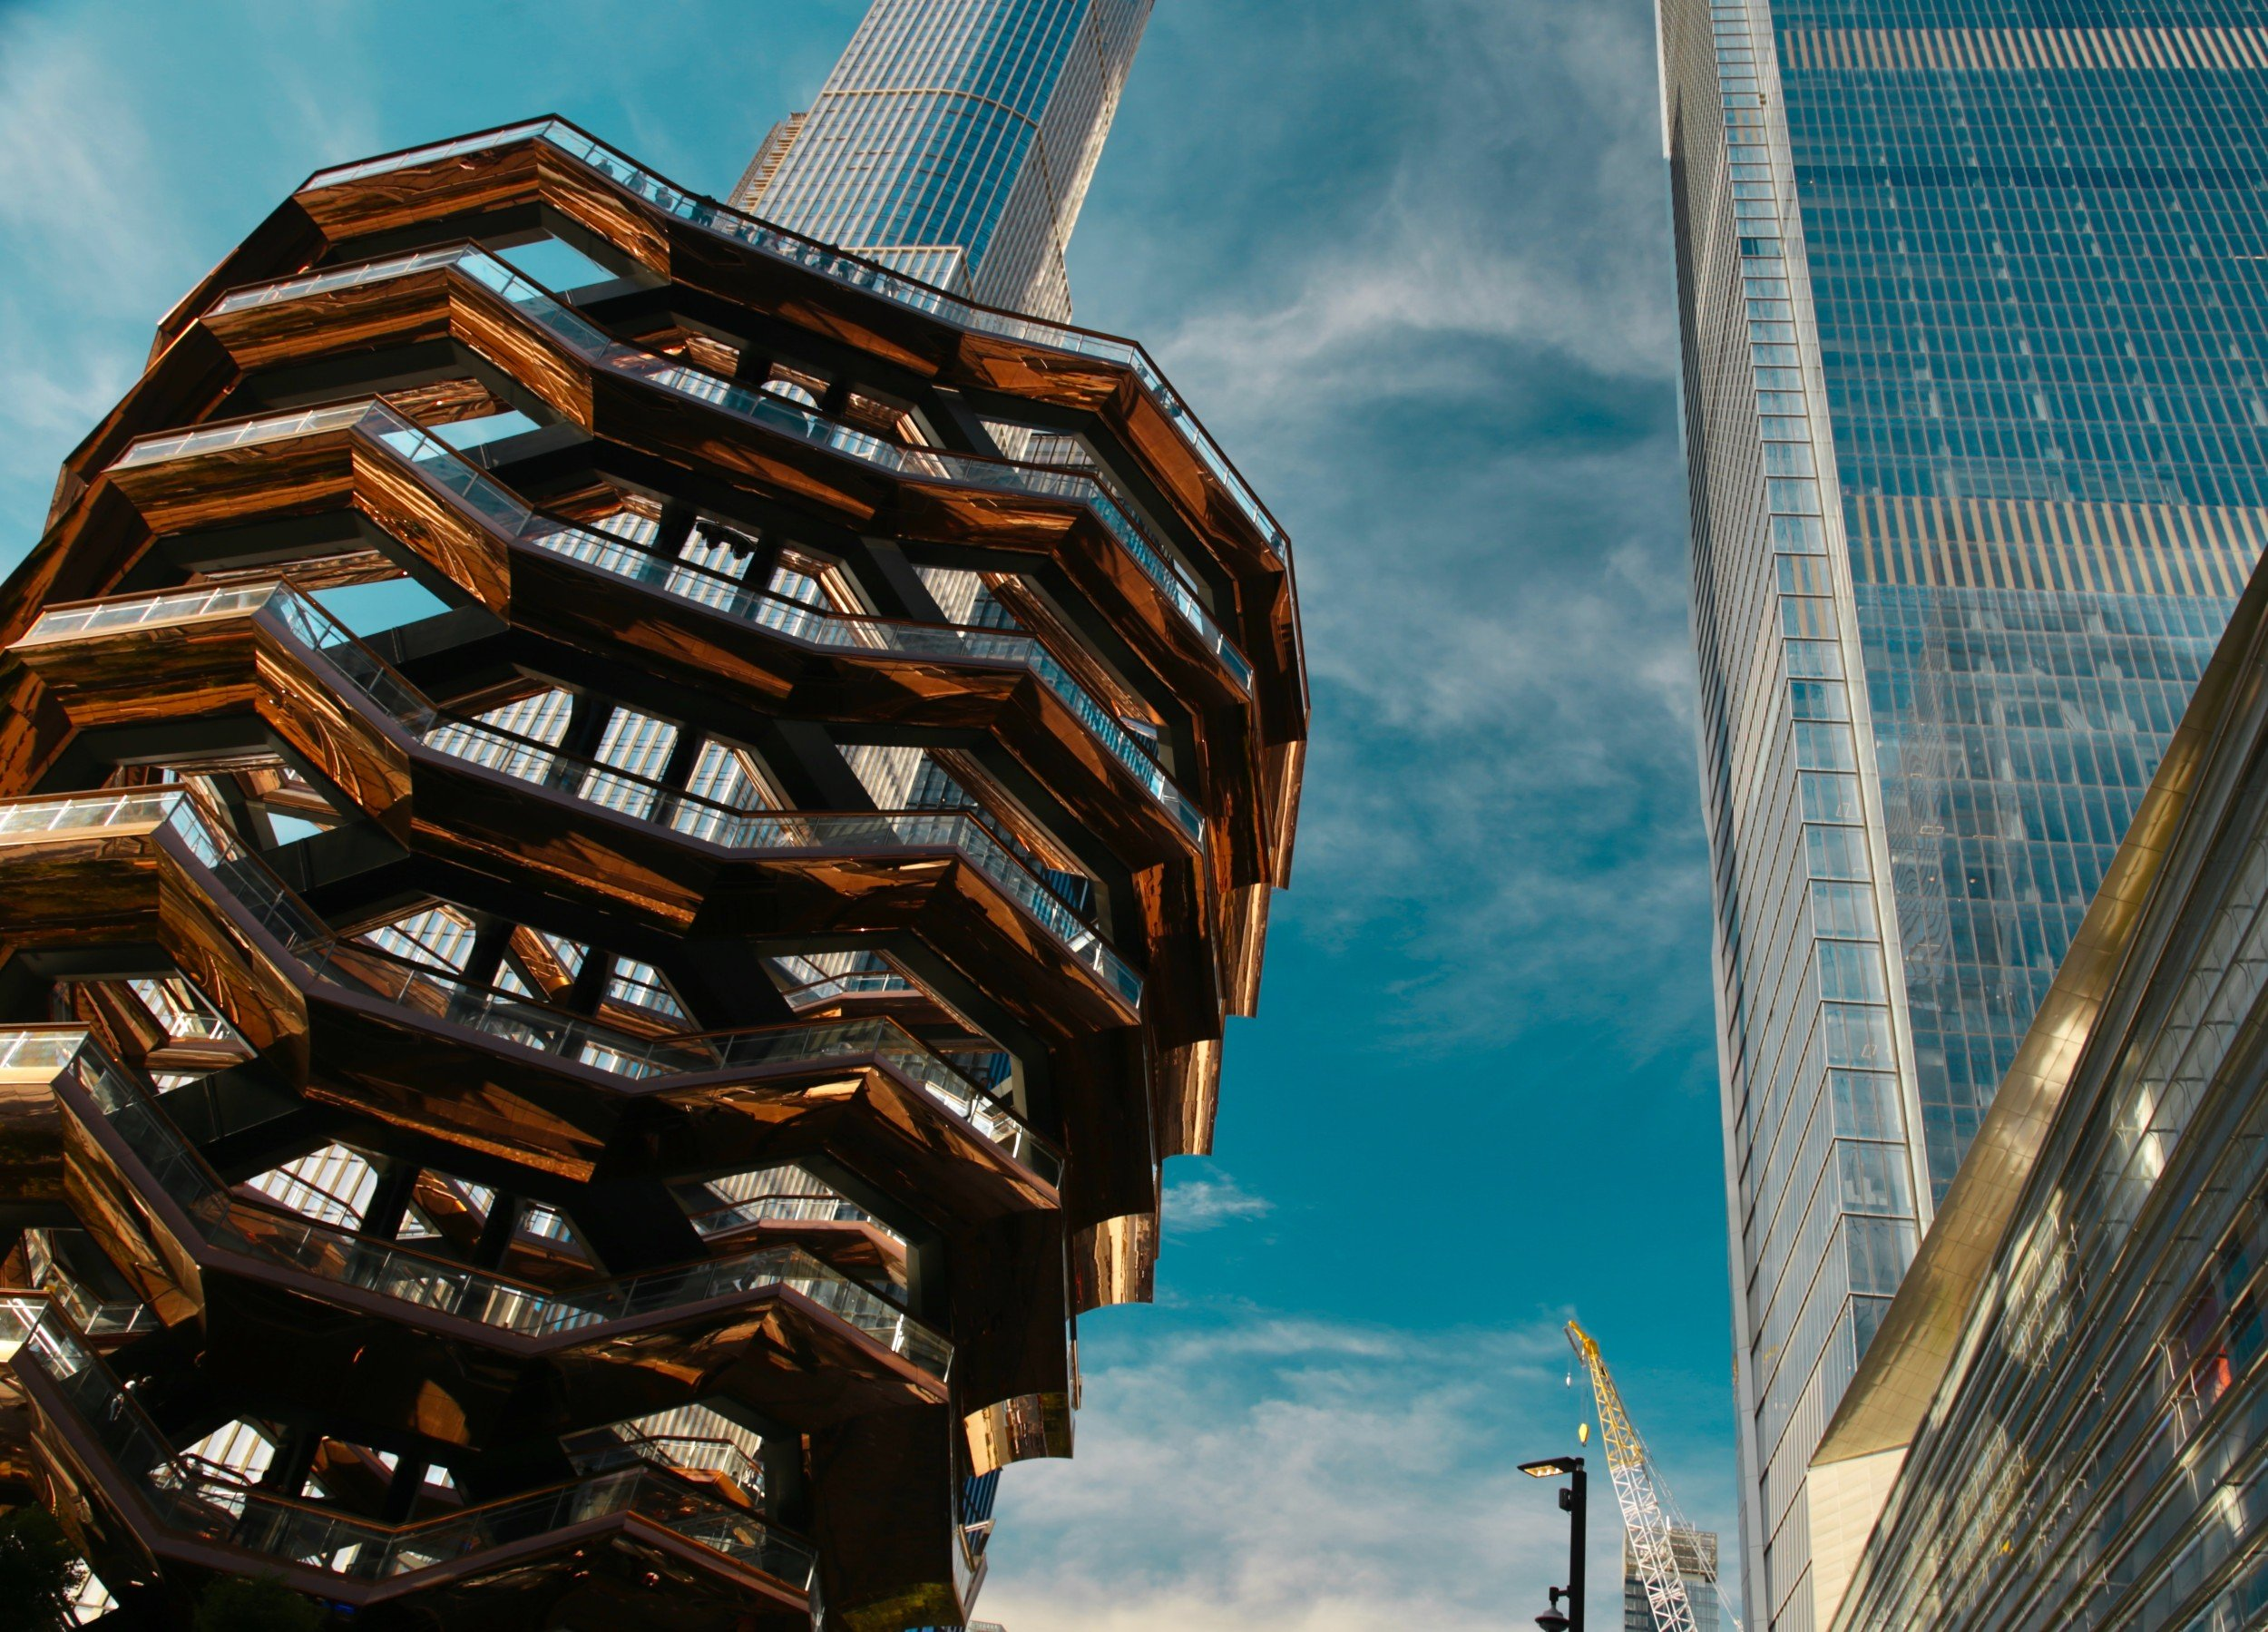 The Vessel is a popular attraction at Hudson Yards